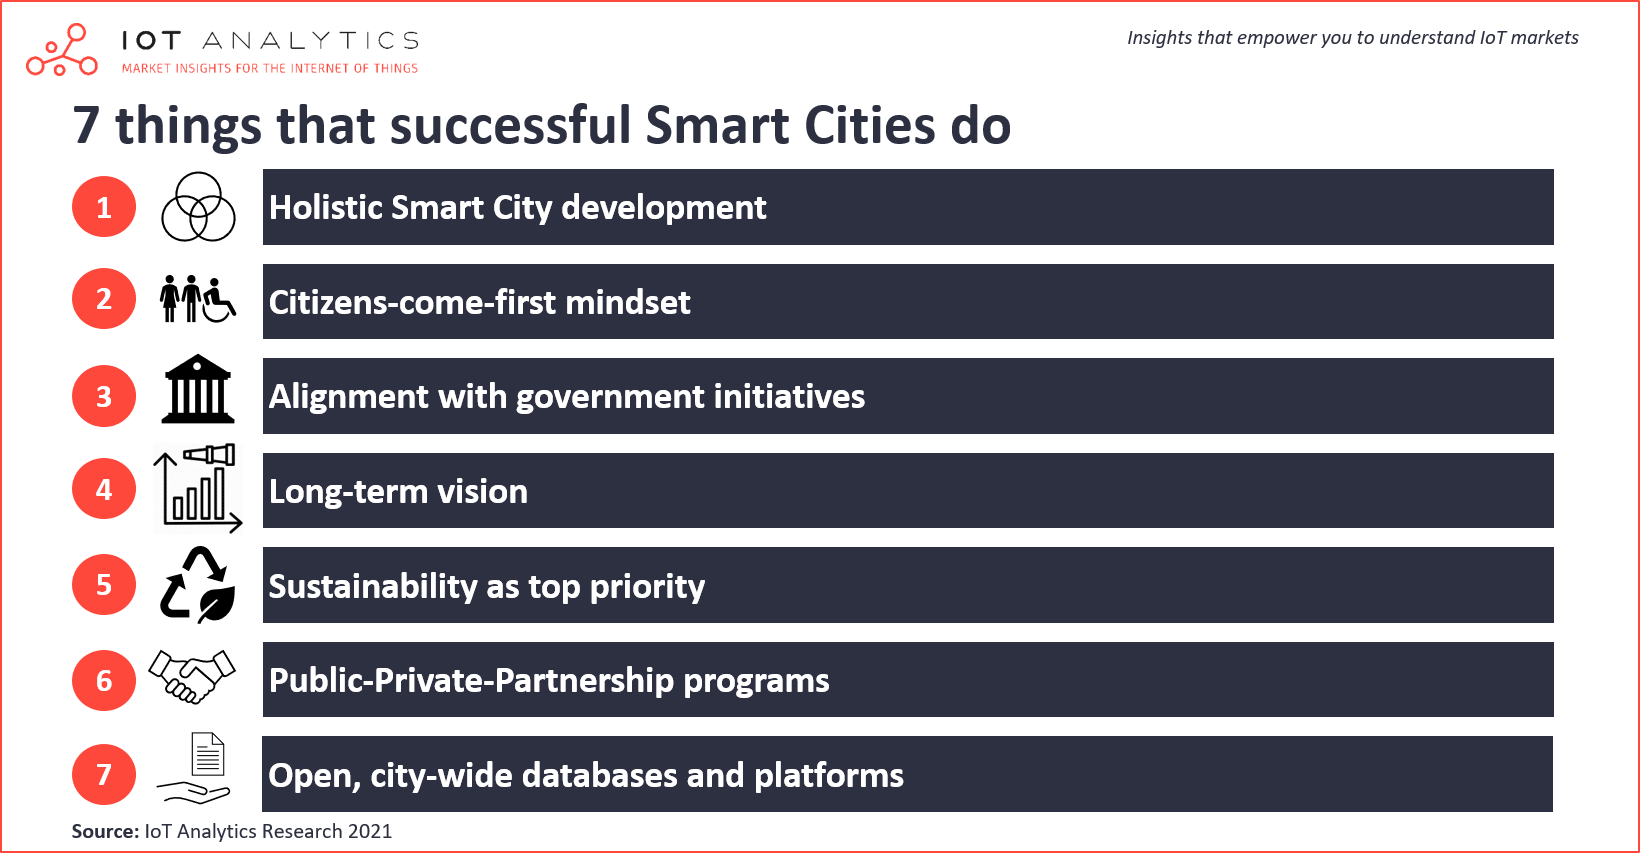 Smart Cities of the future - 7 things that successful Smart Cities do